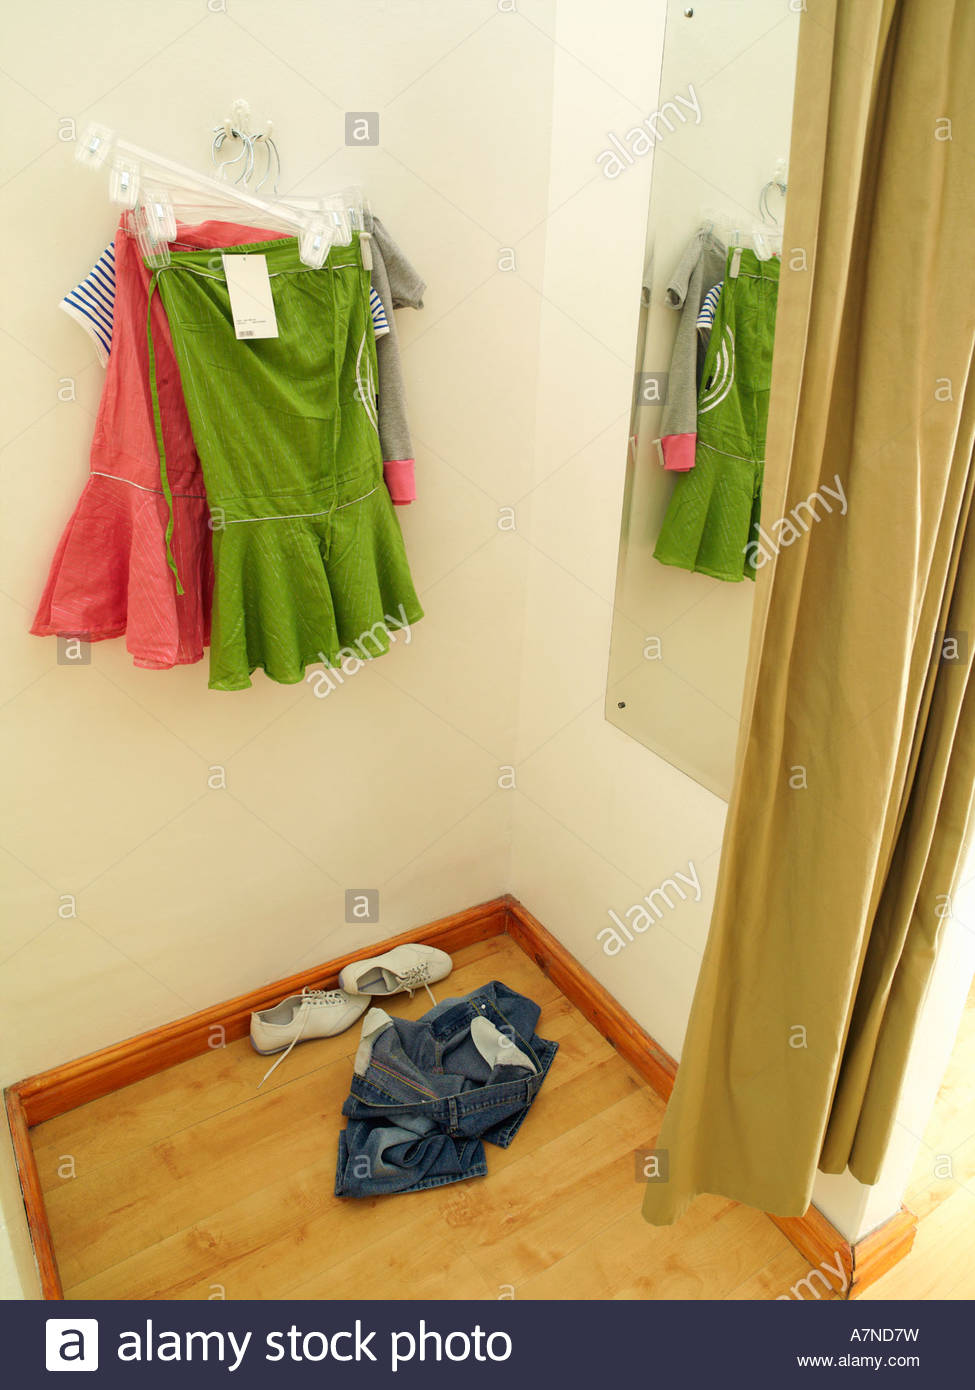 New green and pink skirts hanging on coathanger in clothes shop fitting room reflection in mirror - Stock Image